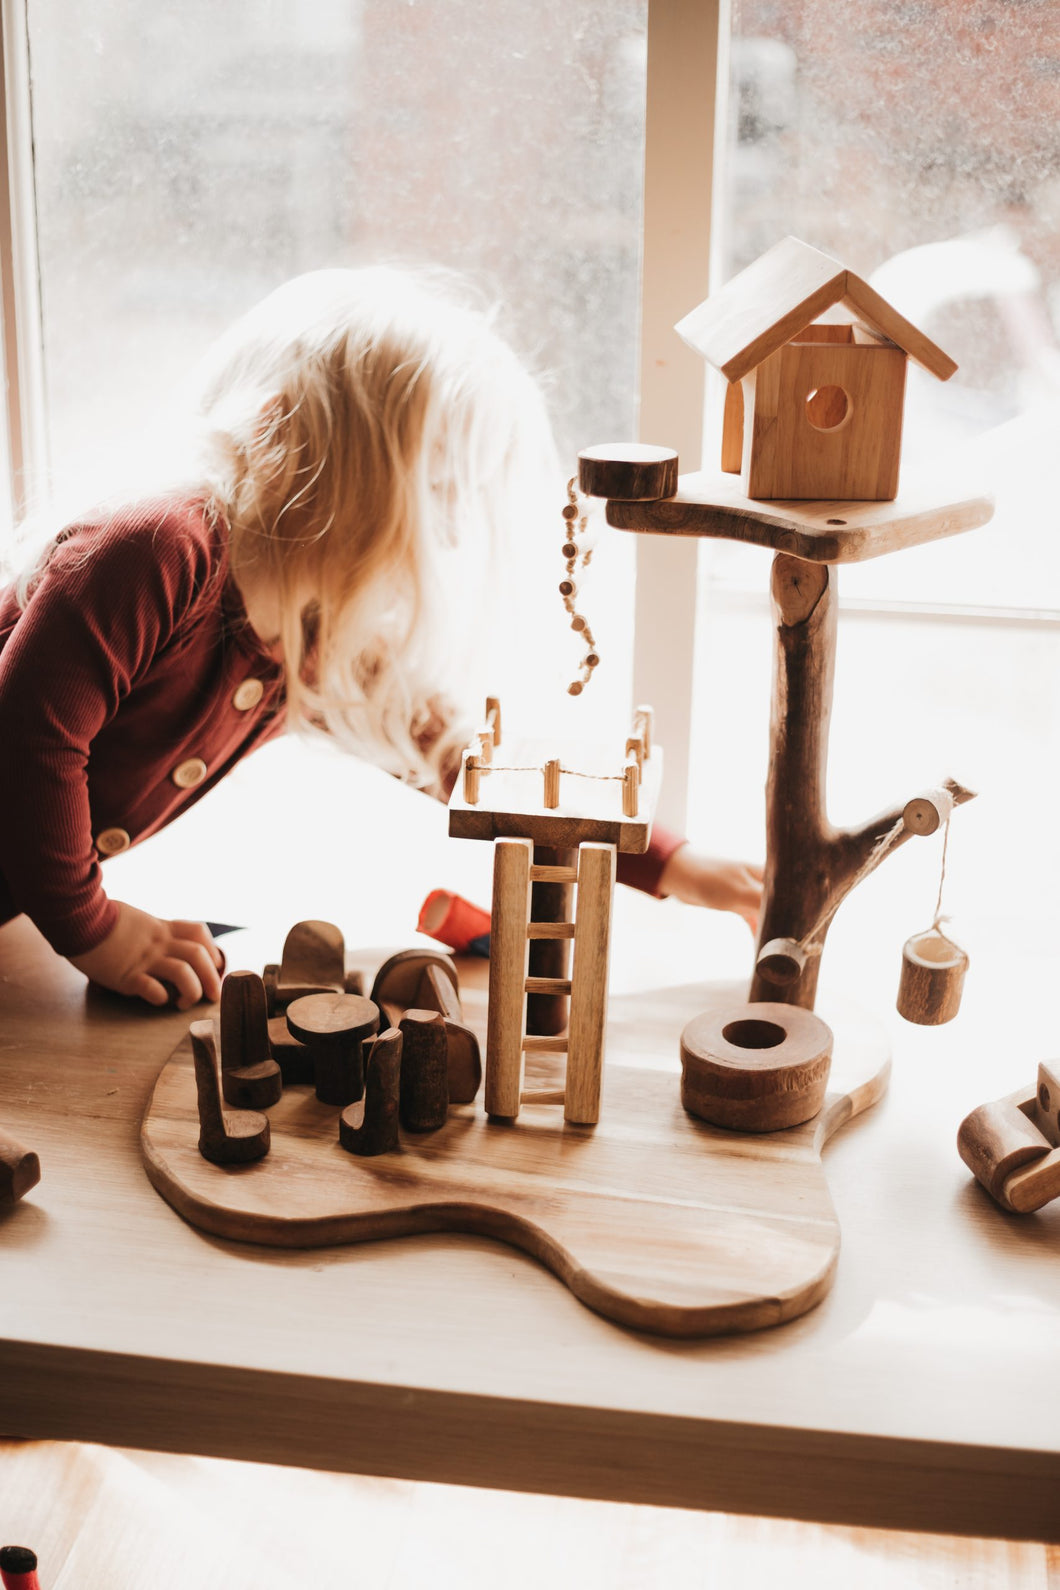 Tree Style House - Behind The Trees Wooden Toys